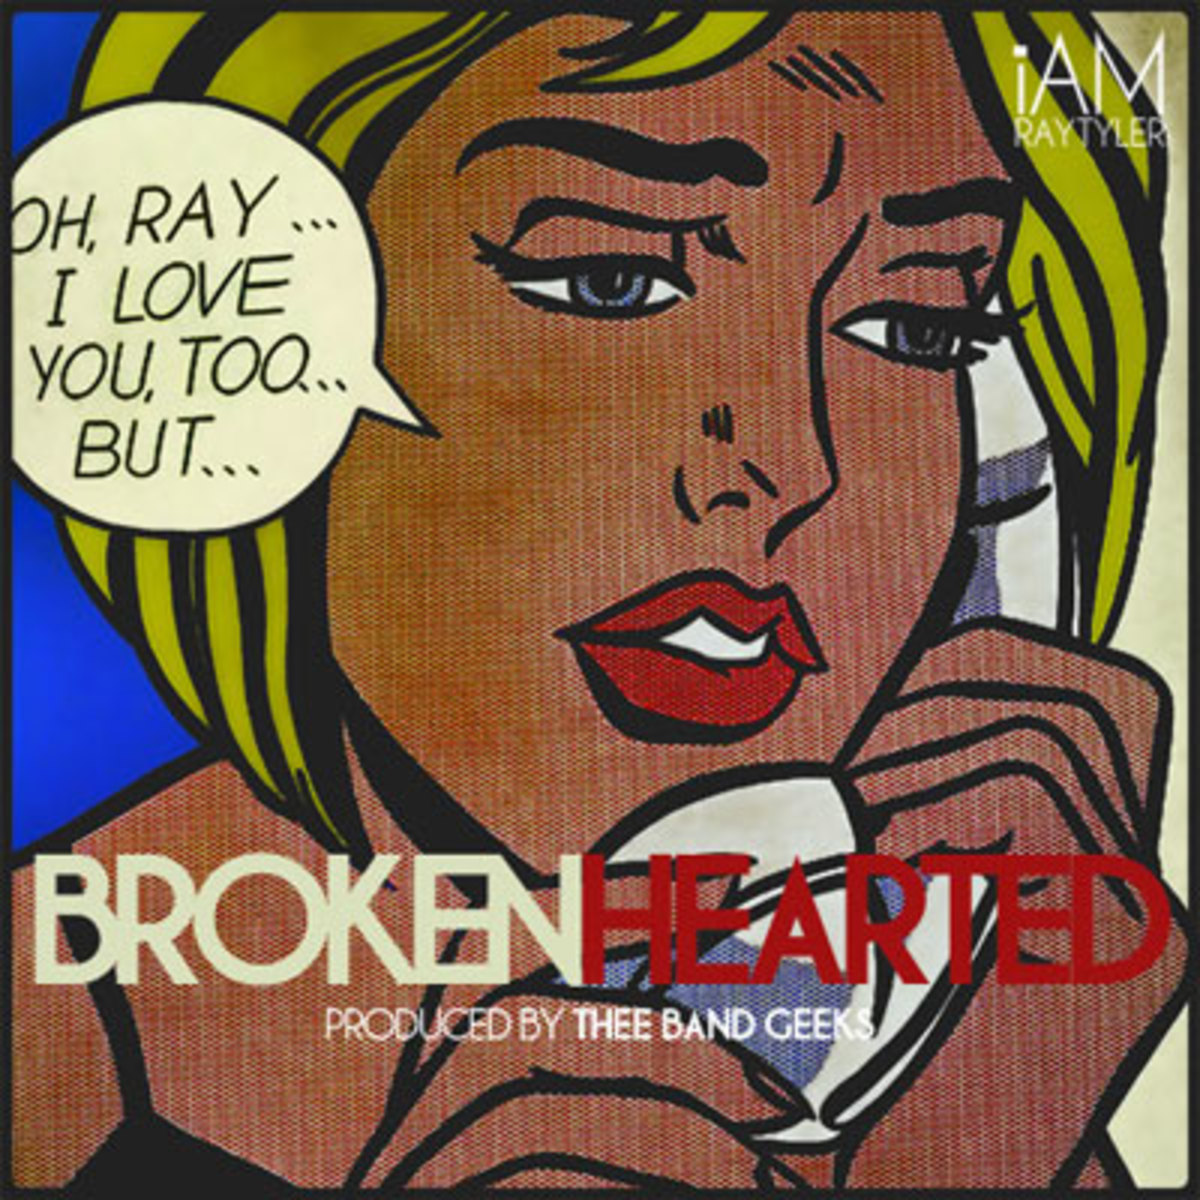 raytyler-brokenhearted.jpg